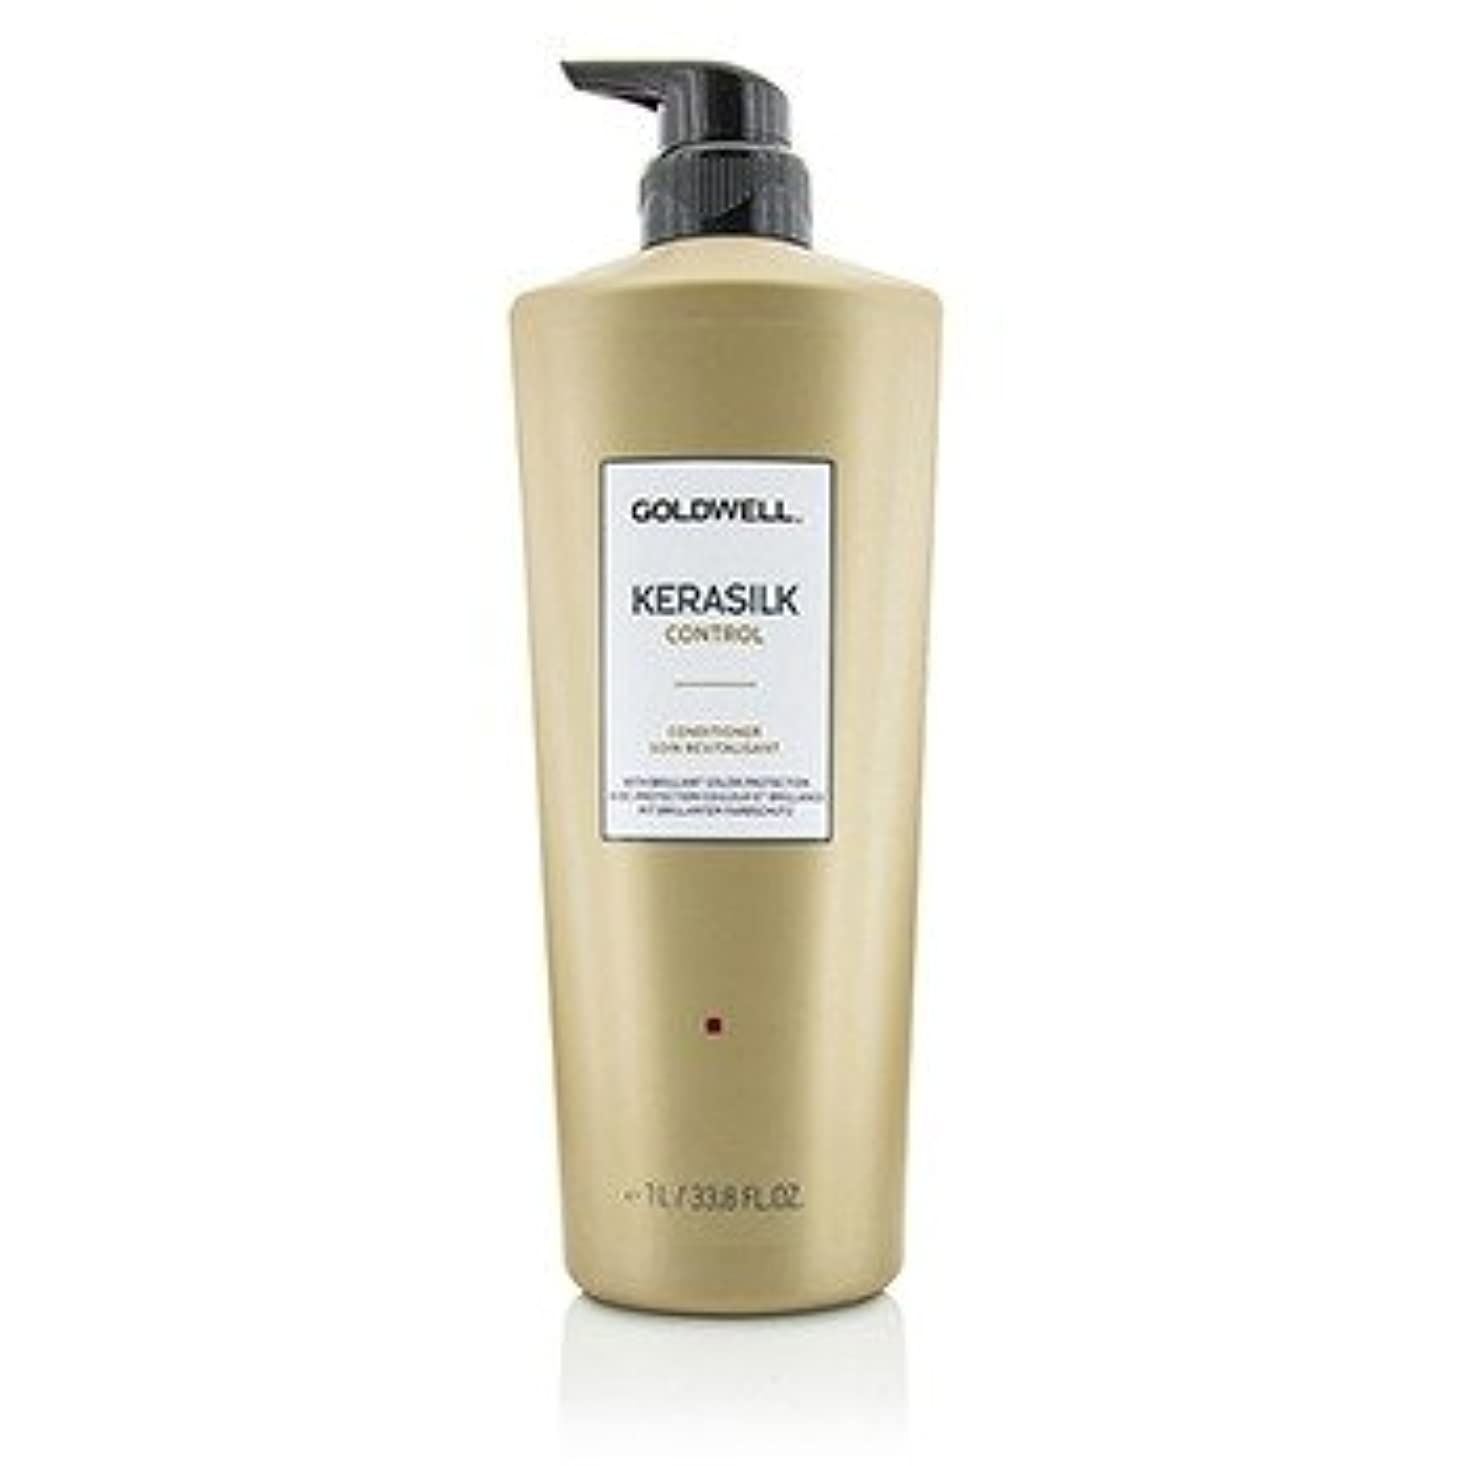 [Goldwell] Kerasilk Control Conditioner (For Unmanageable Unruly and Frizzy Hair) 200ml/6.7oz